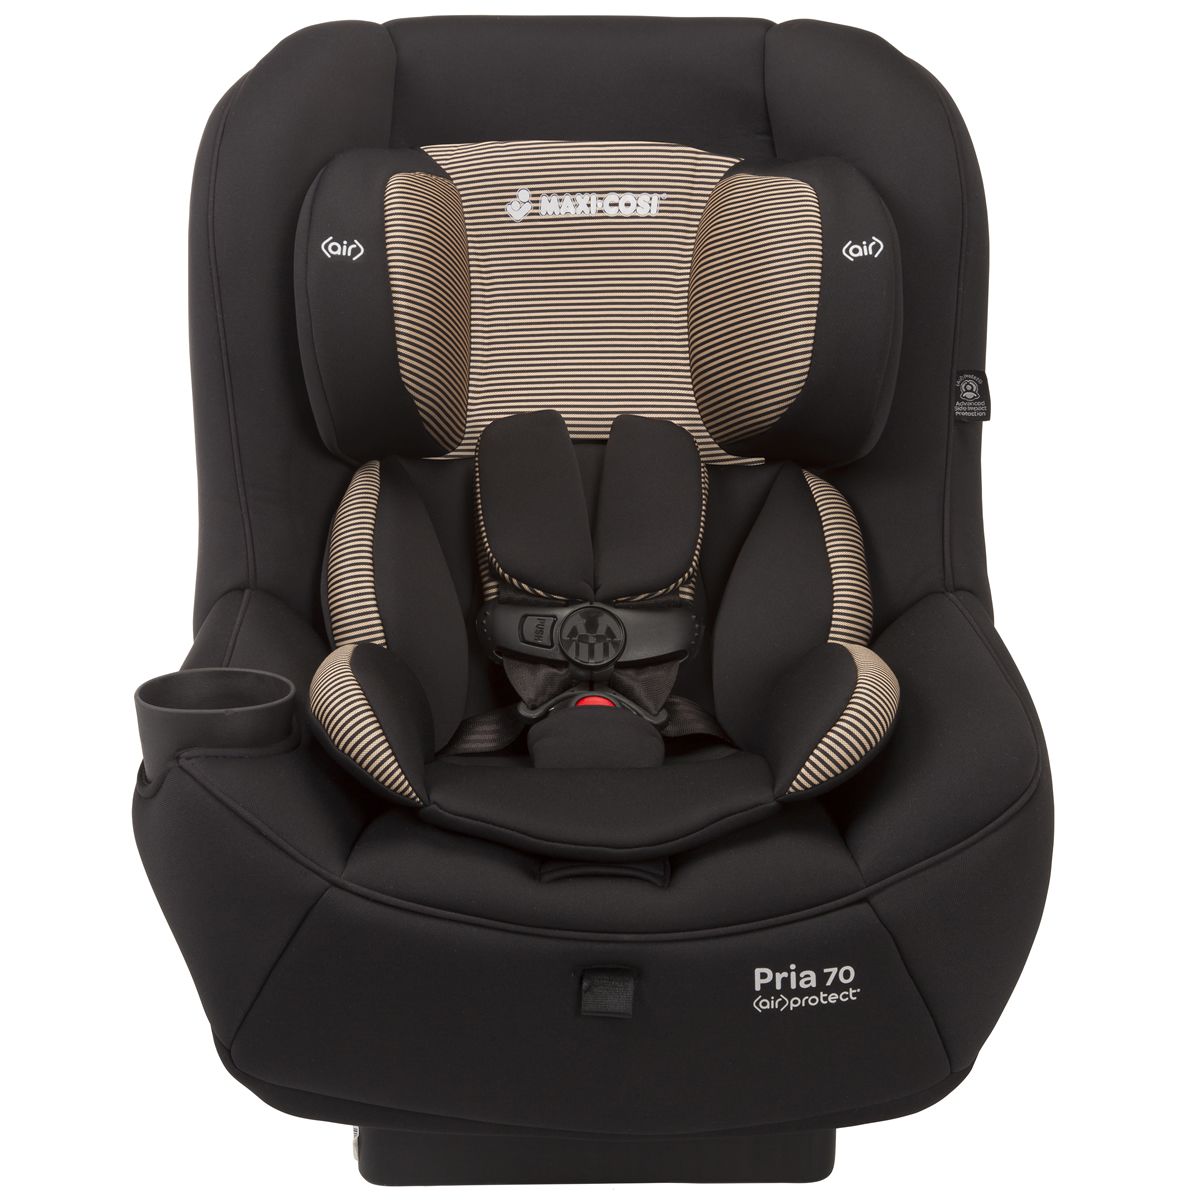 MAXI-COSI Pria 70 Convertible Car Seat - Black Toffee